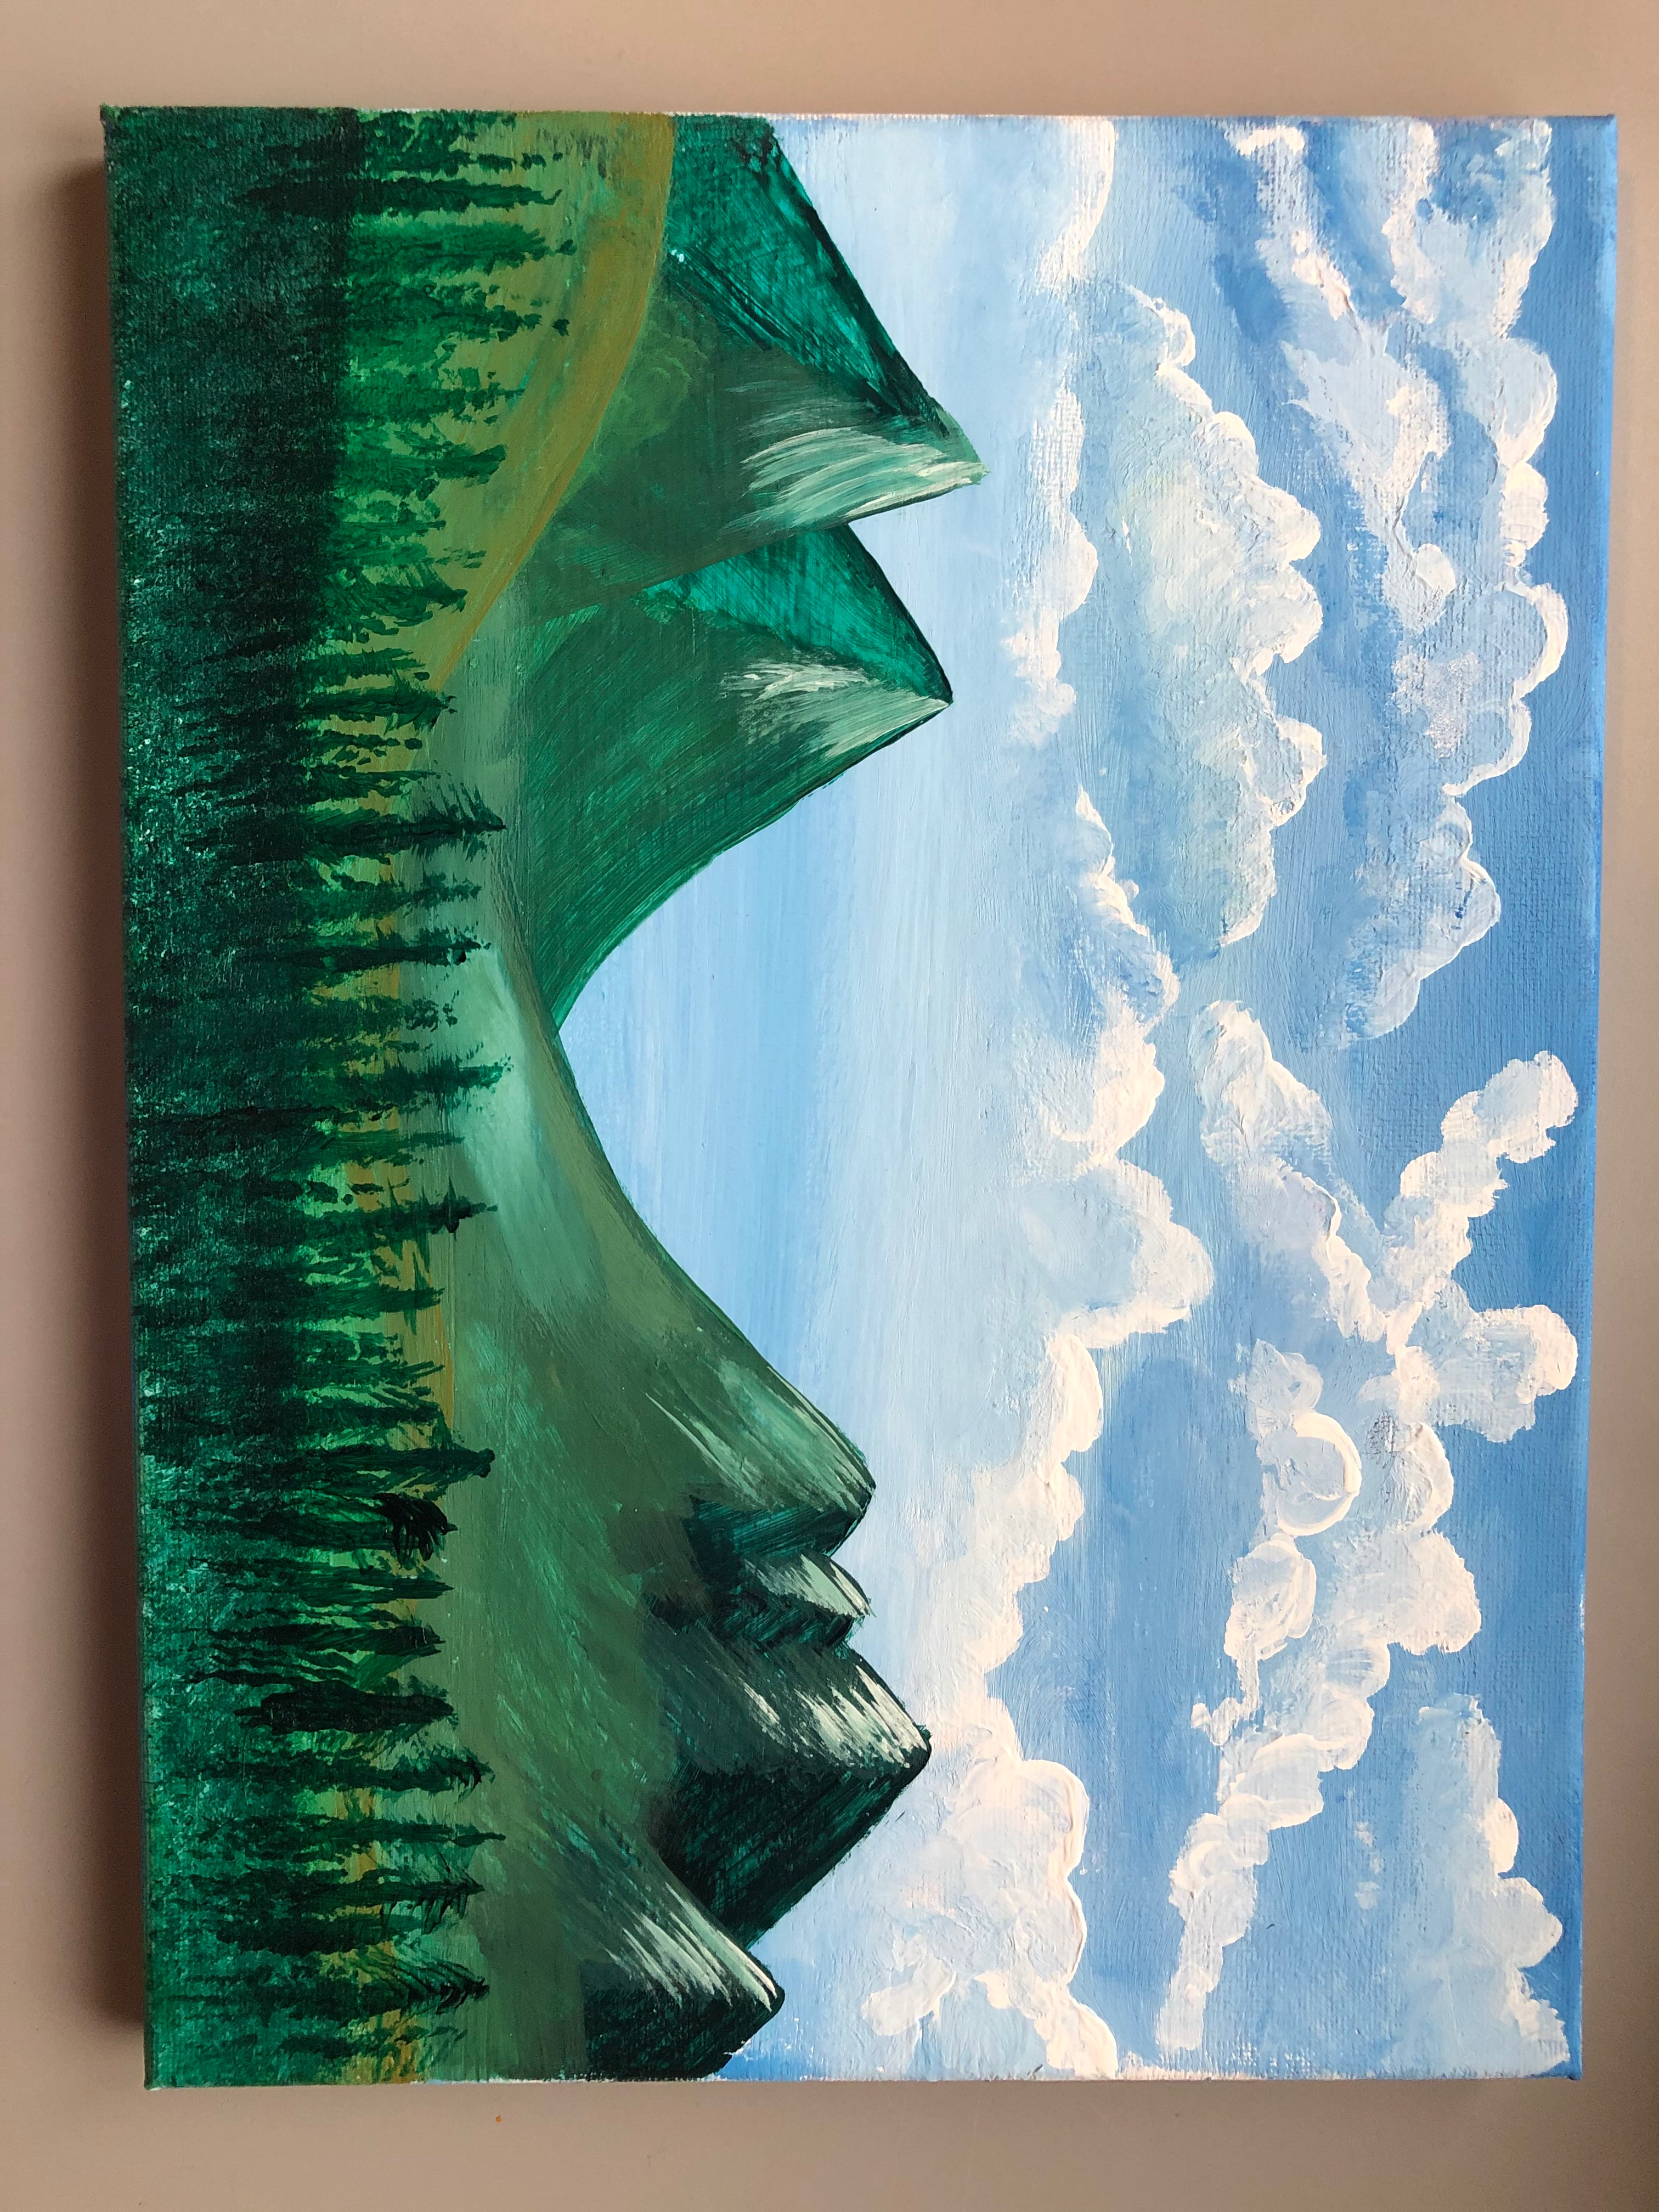 Countryside Mountains painted by @rudash